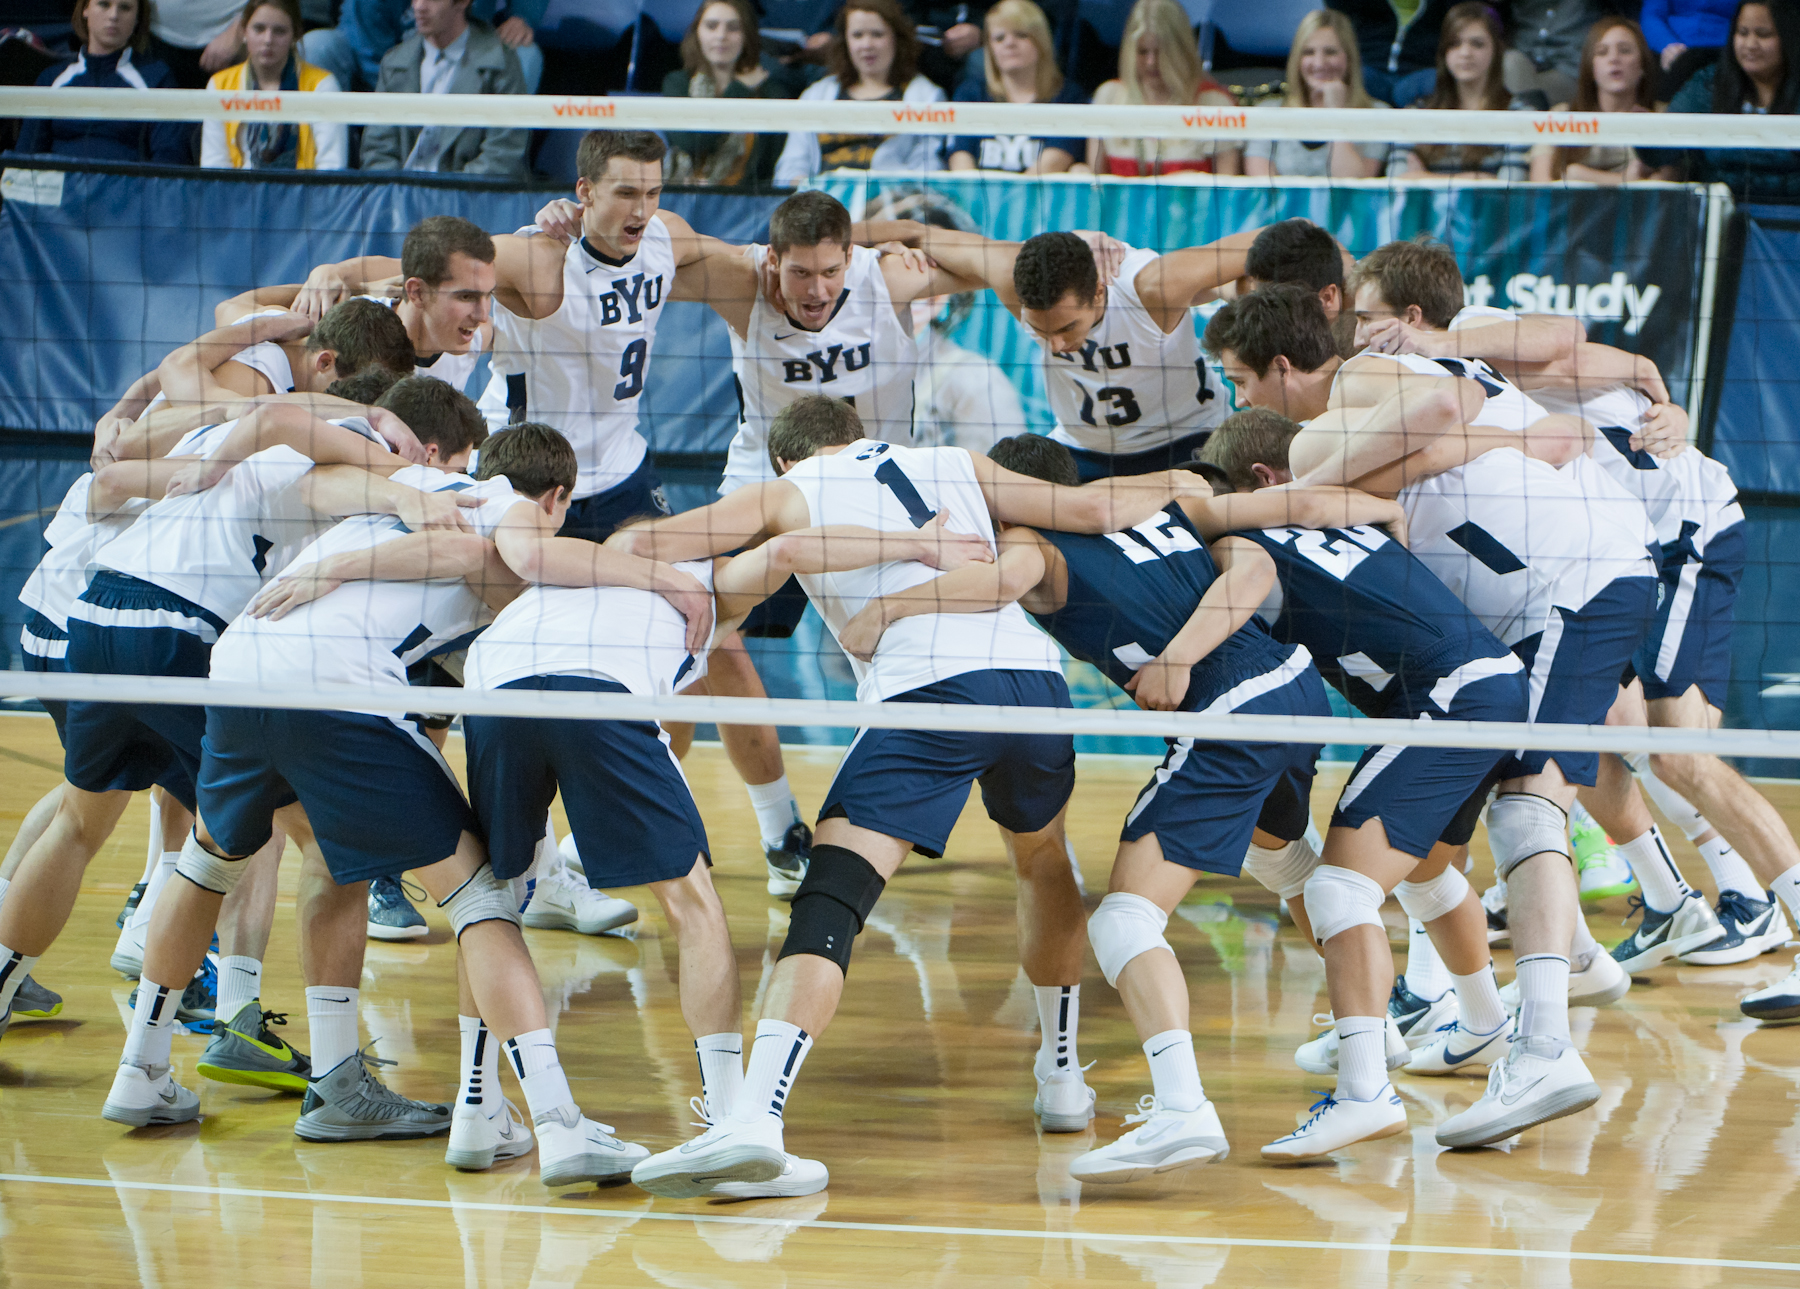 Byu Volleyball Hosts Top Ranked Uc Irvine Uc San Diego The Daily Universe